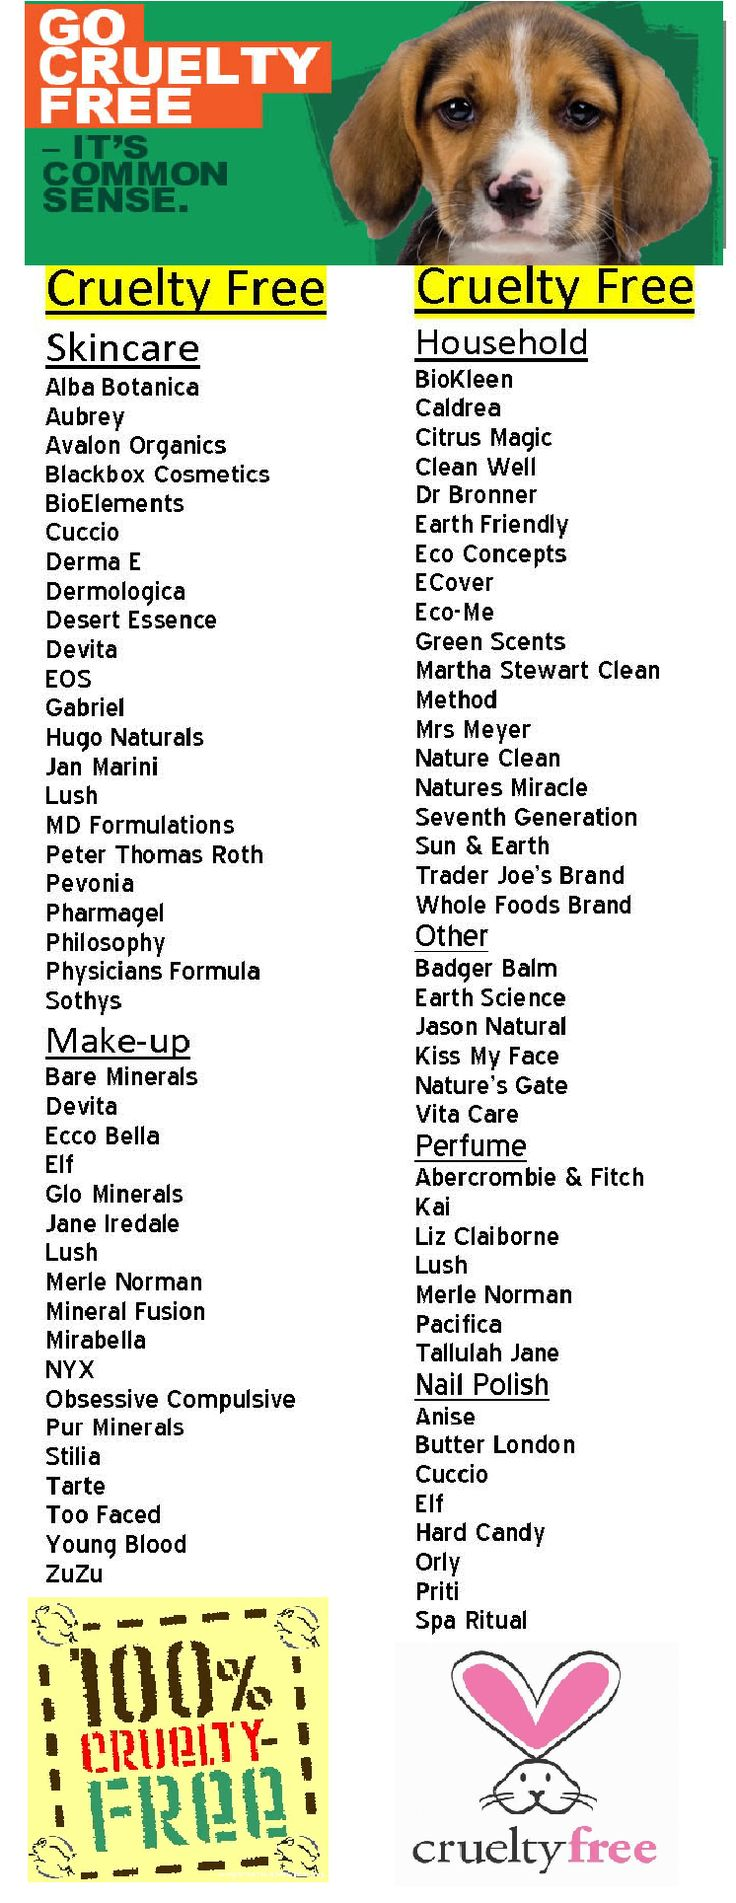 Support cruelty free companies and their products.  CHECK PETA's website for which companies are CURRENTLY cruelty-free...